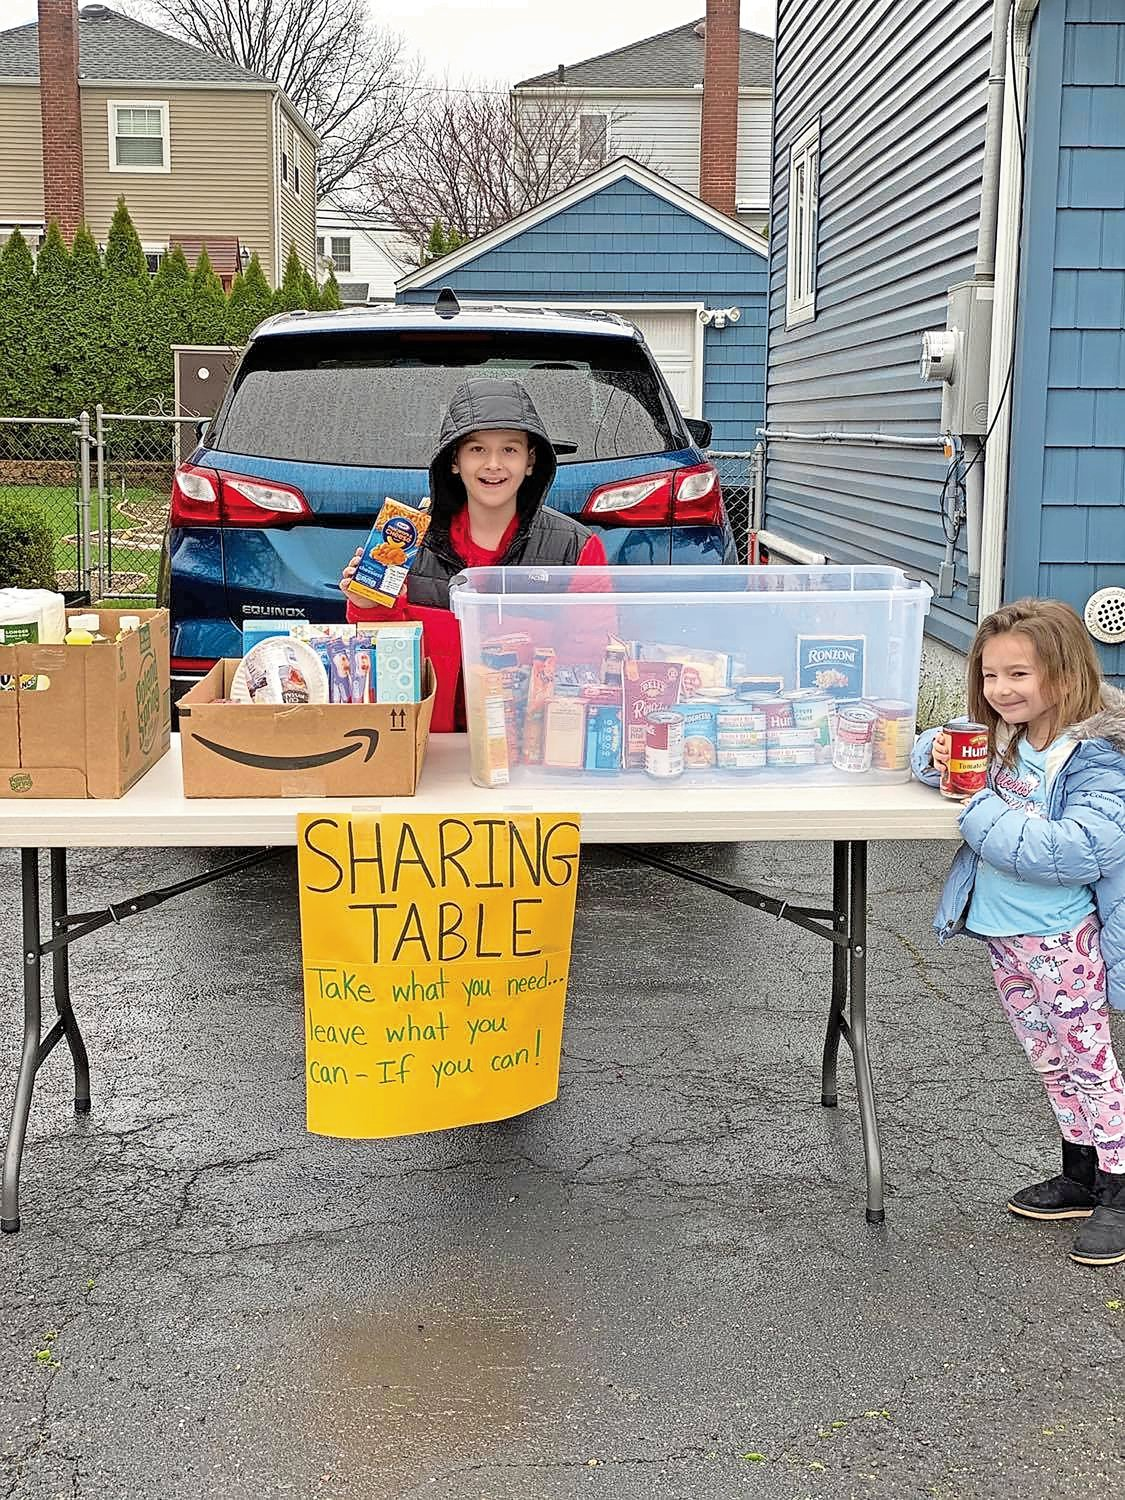 Riley and Hailey Loughlin, 10 and 4, hand out toiletries, cleaning supplies and nonperishable food at their family's Sharing Table on Poppy Street every weekend.